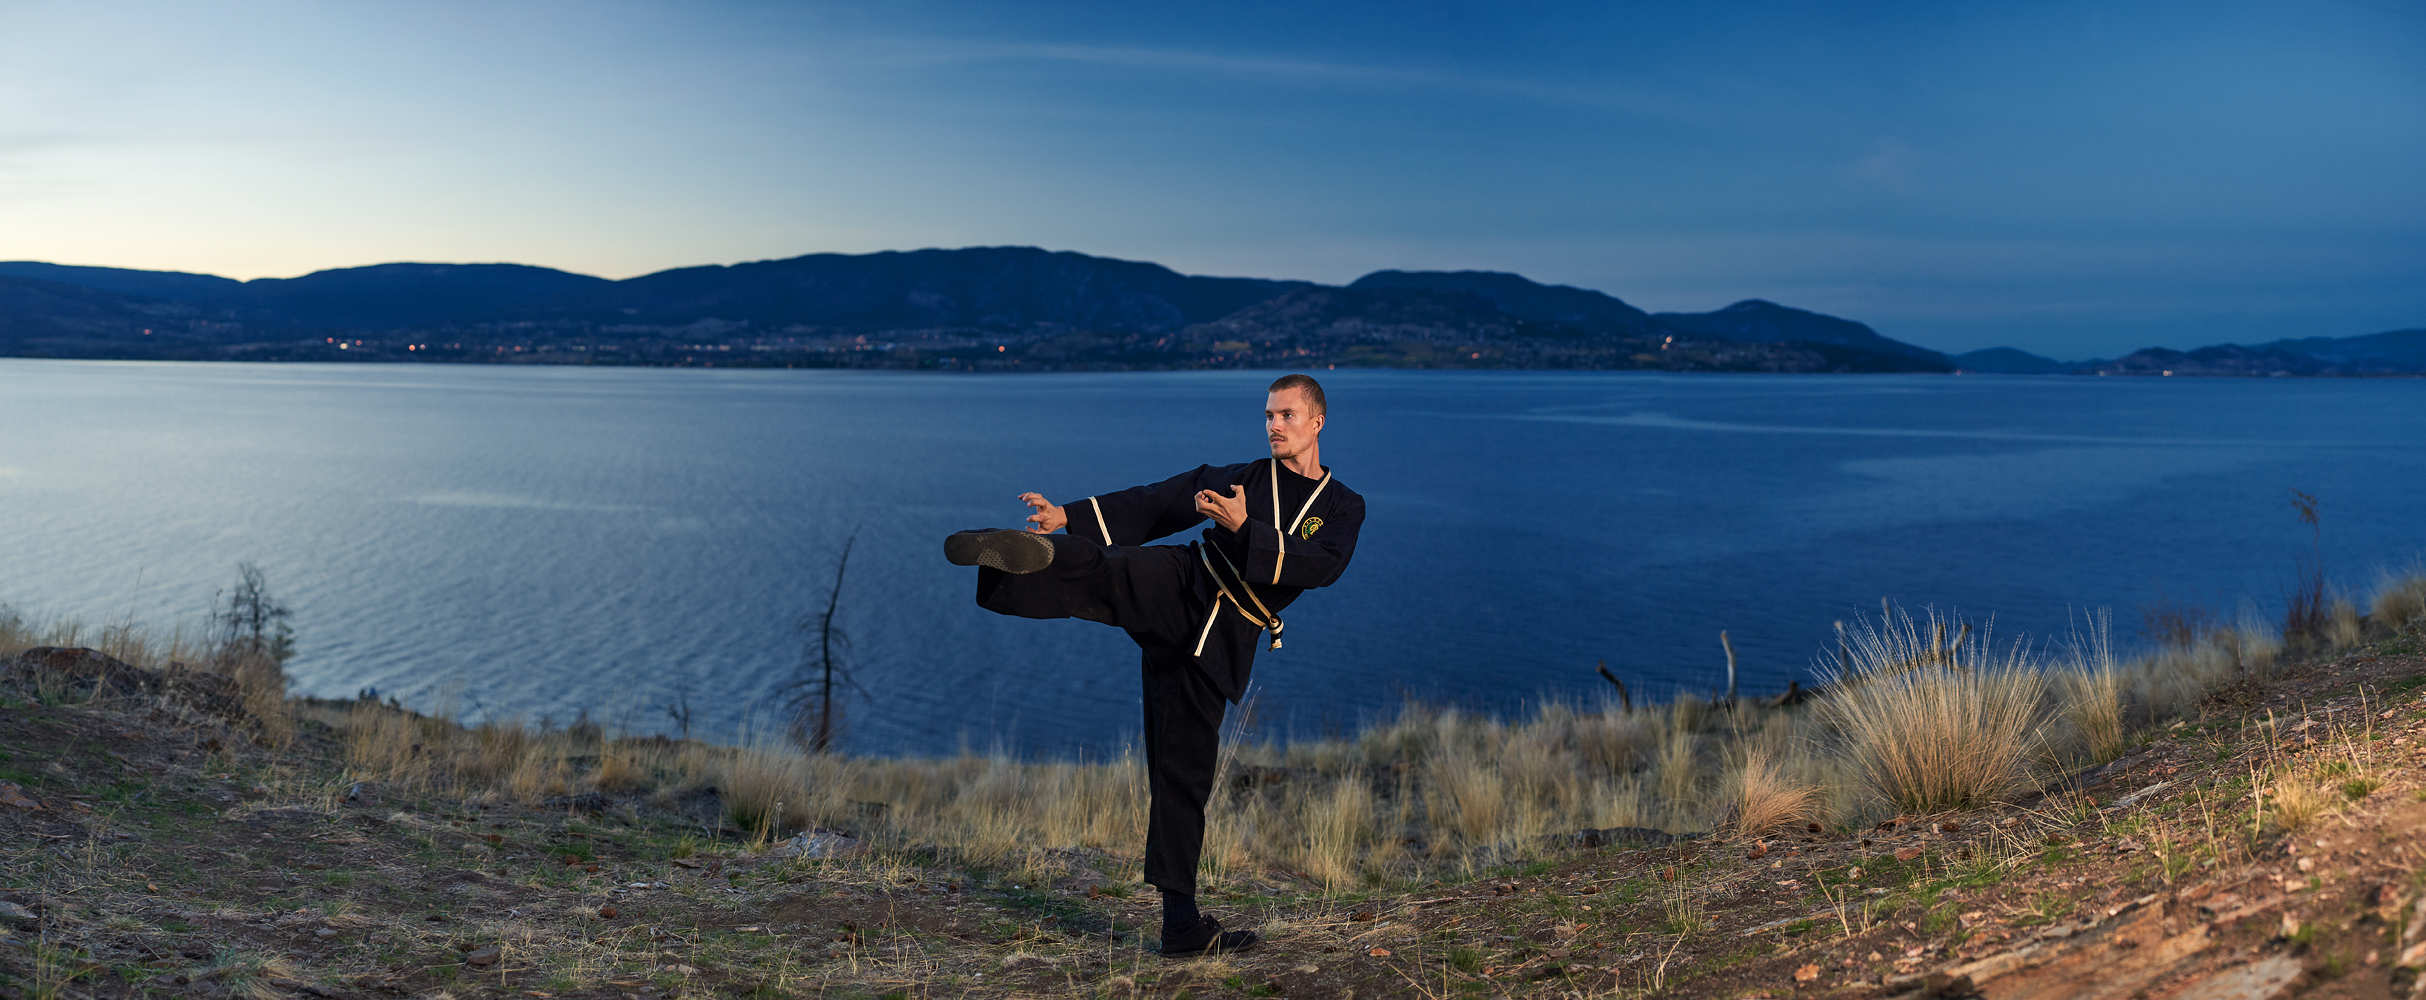 Kung Fu - Side Kick at Bertram Creek Park, Kelowna